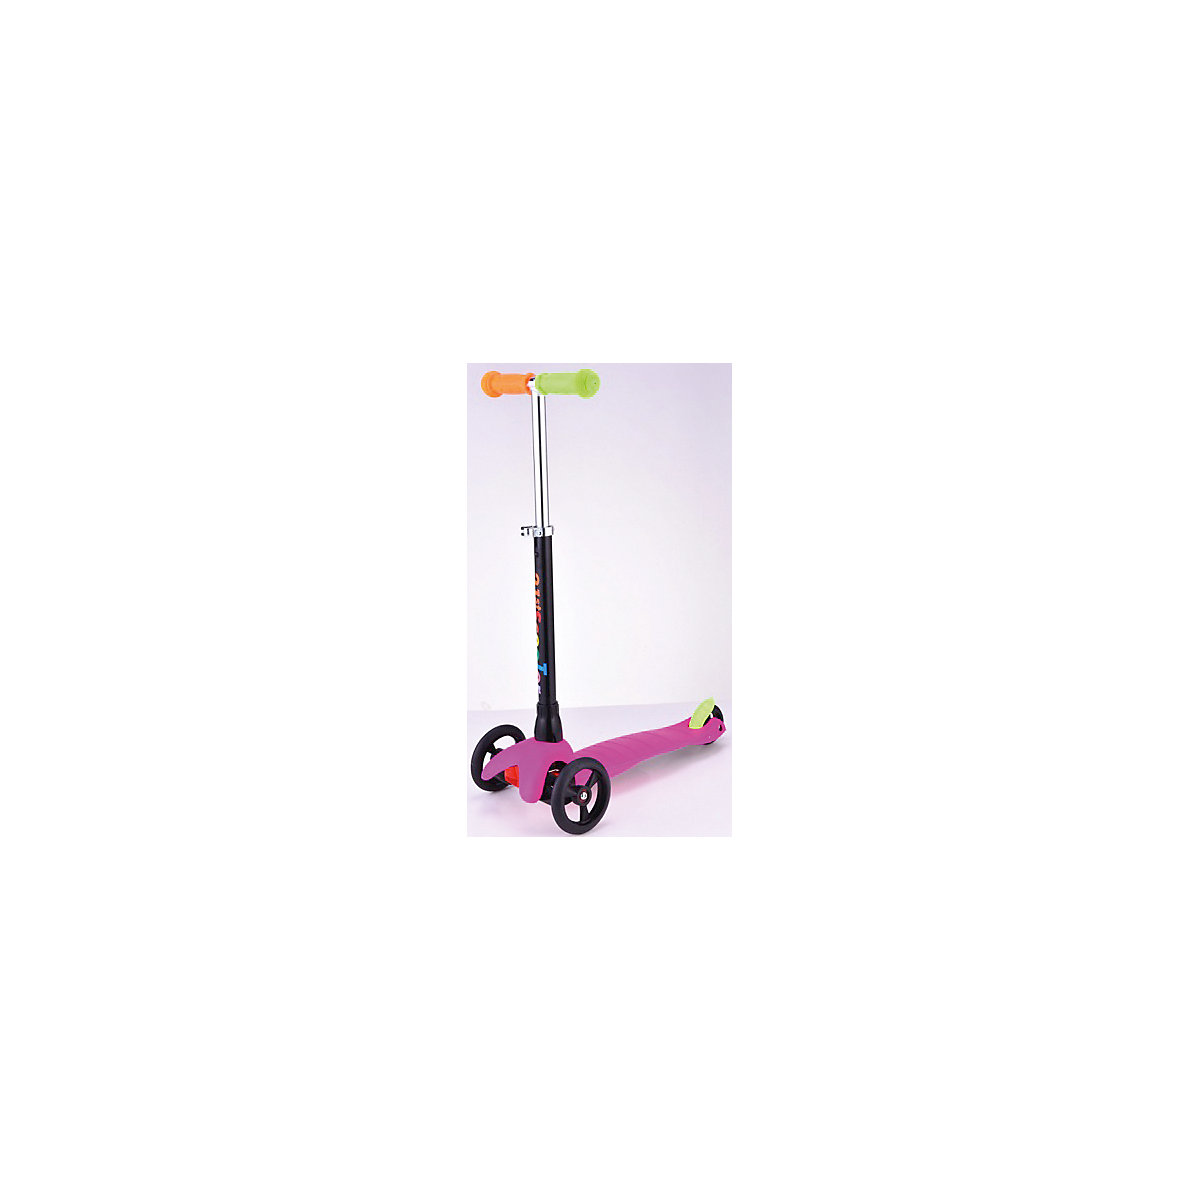 BUGGY BOOM Kick Scooters,Foot Scooters 8074953 scooter three-wheeled for children boys and girls